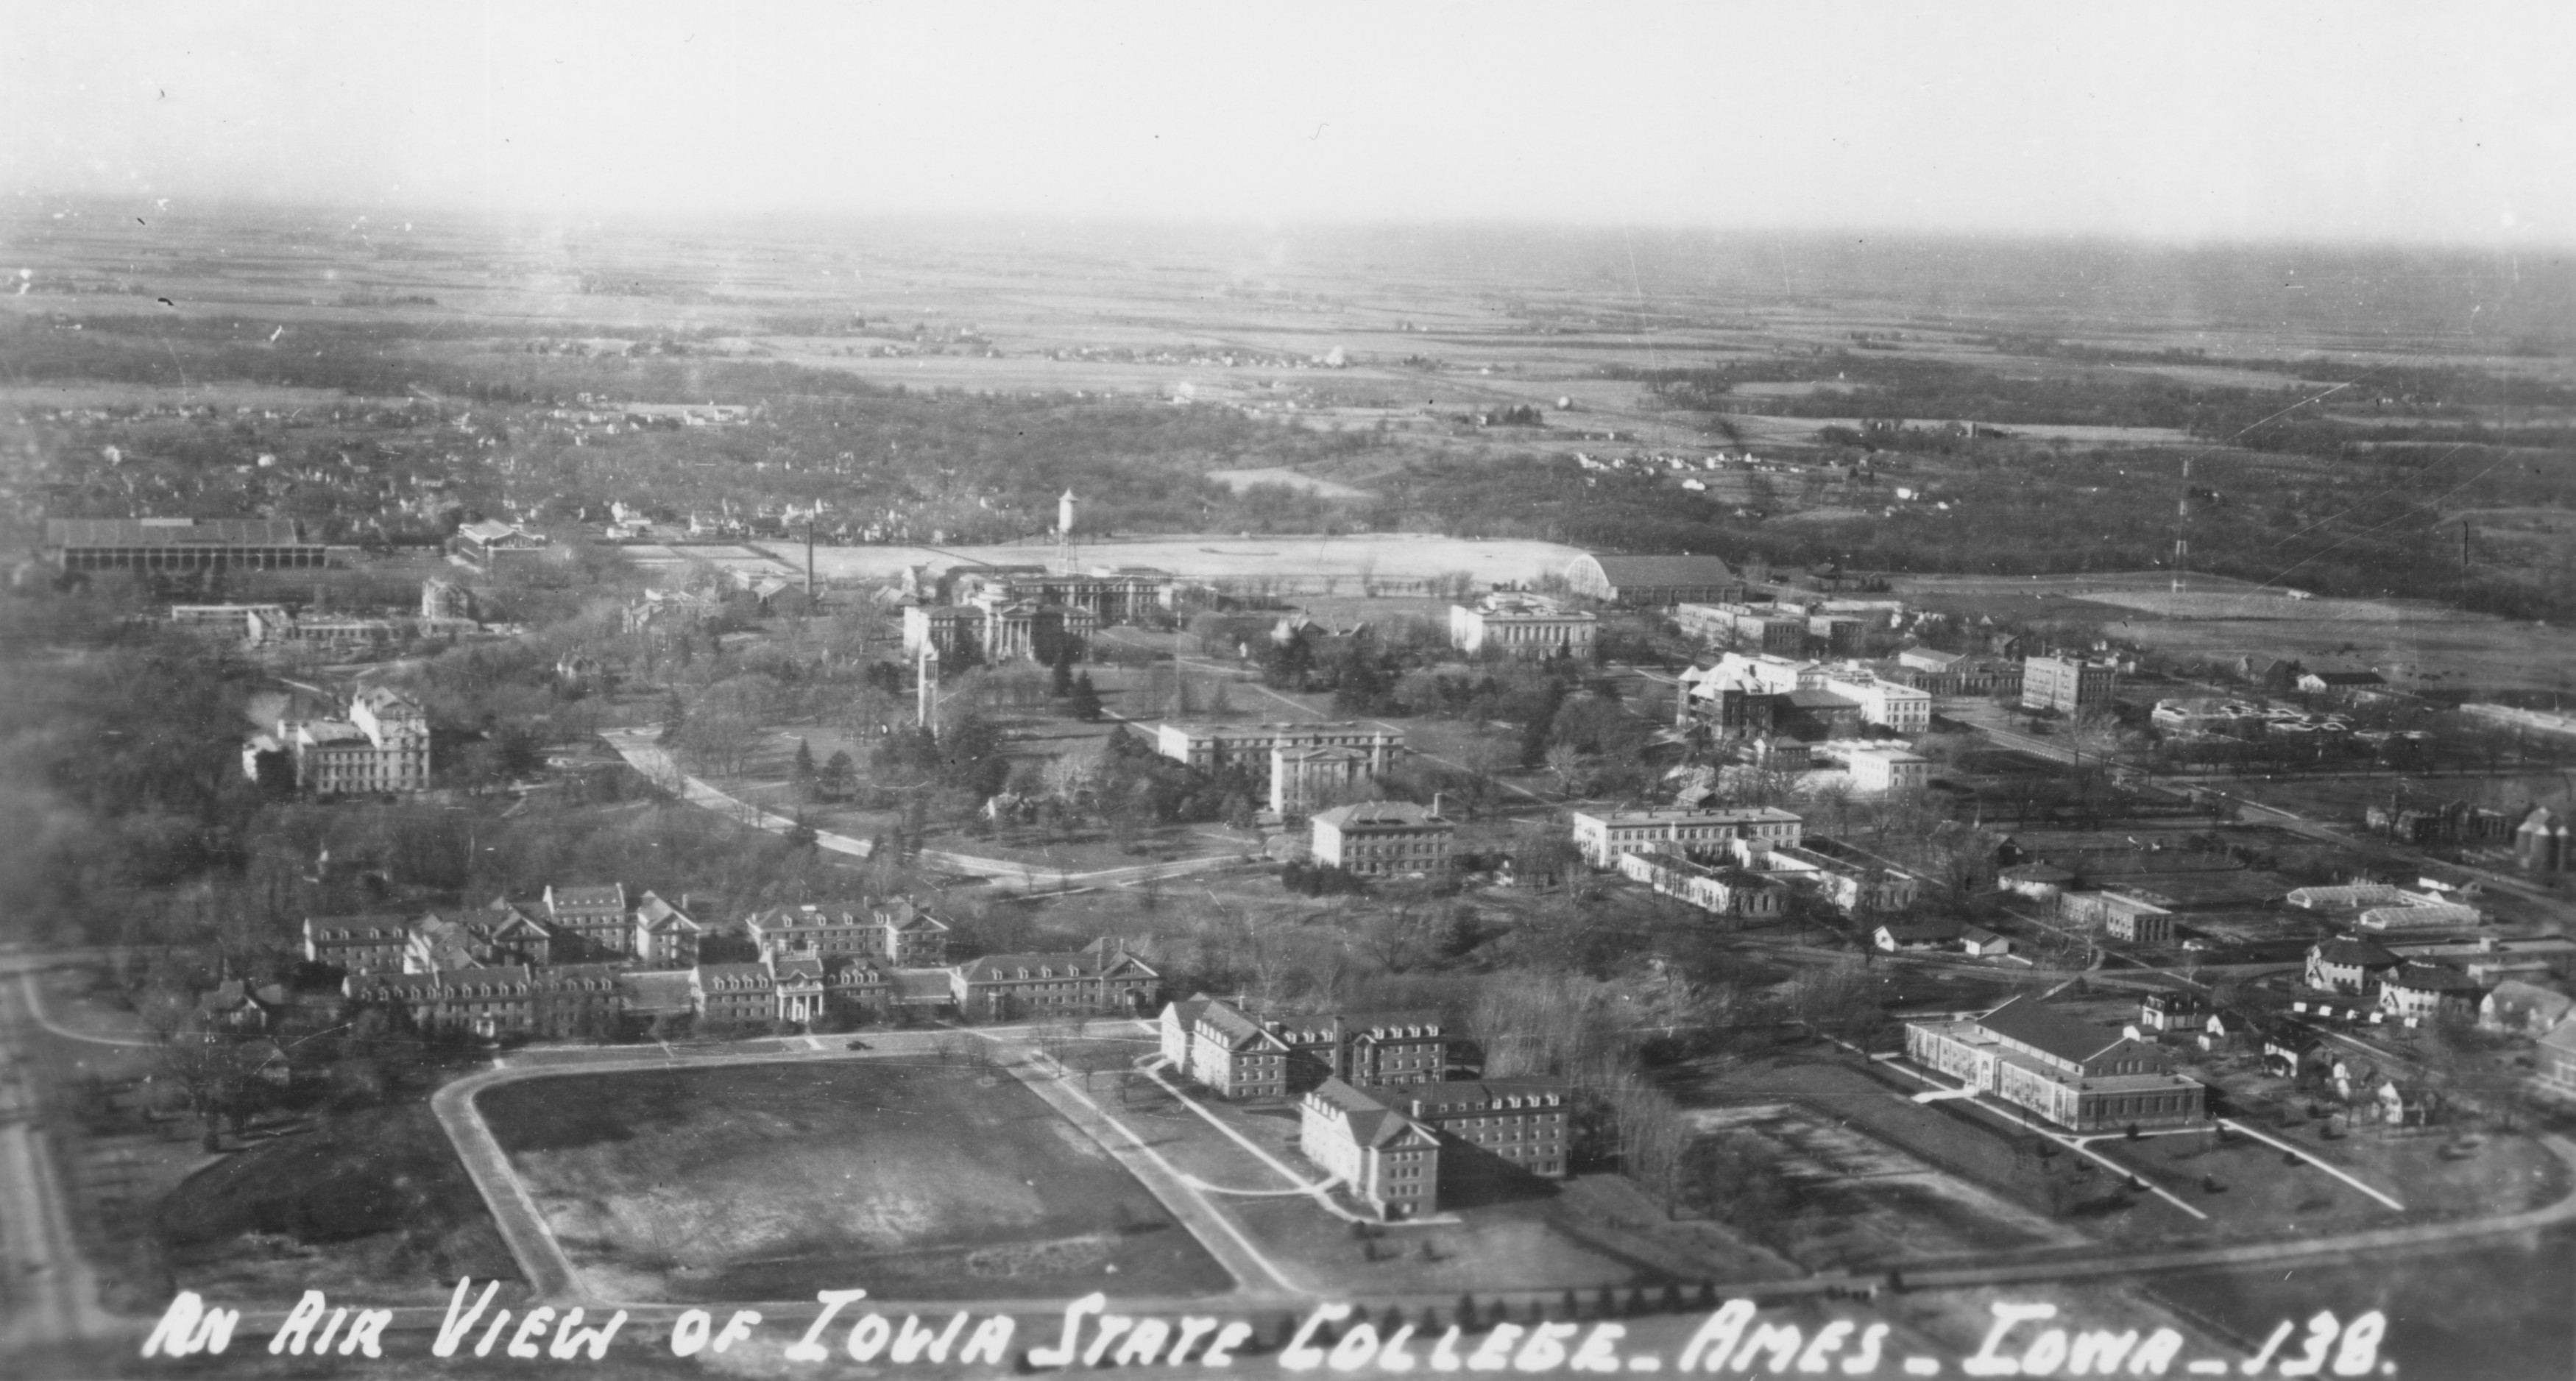 Lincoln Highway 1938 Aerial View Ames Historical Society